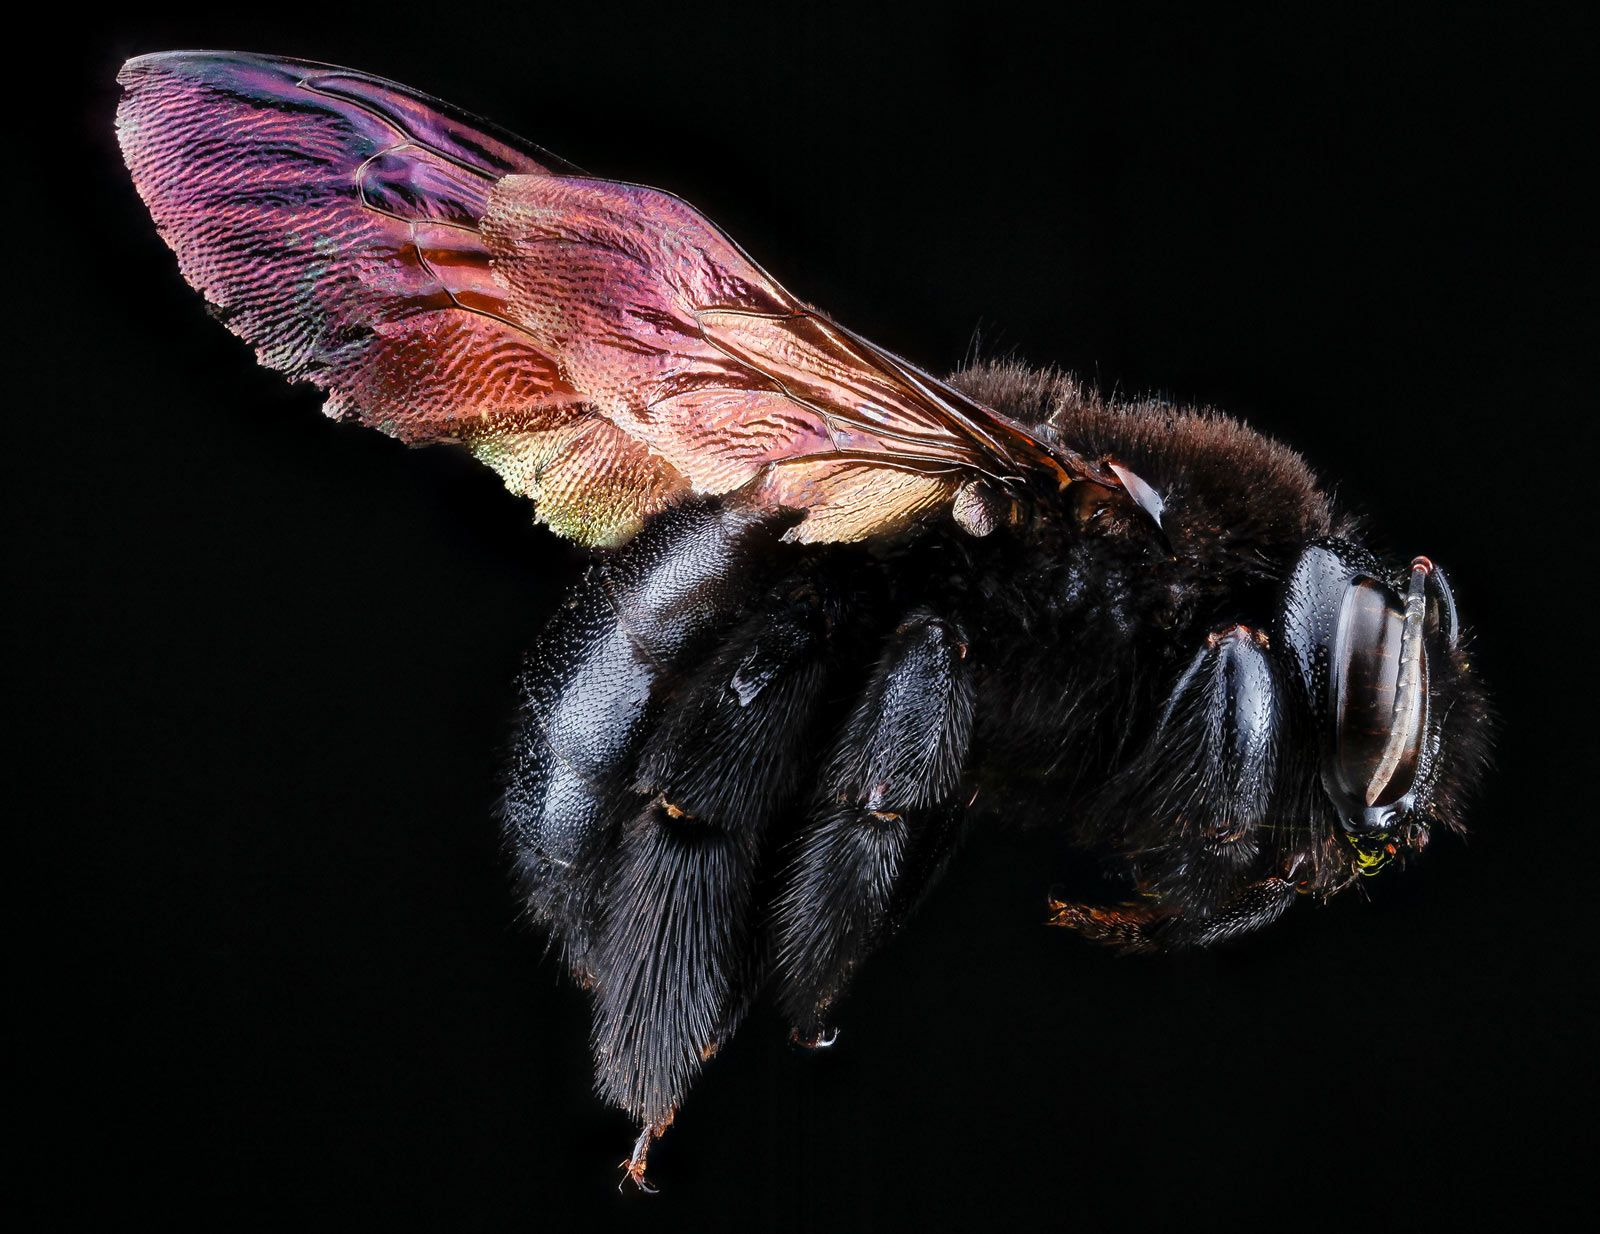 """a carpenter bee  from National Geographic's """"Intimate portraits of bees"""" online exhibit by photographer Sam Droege"""